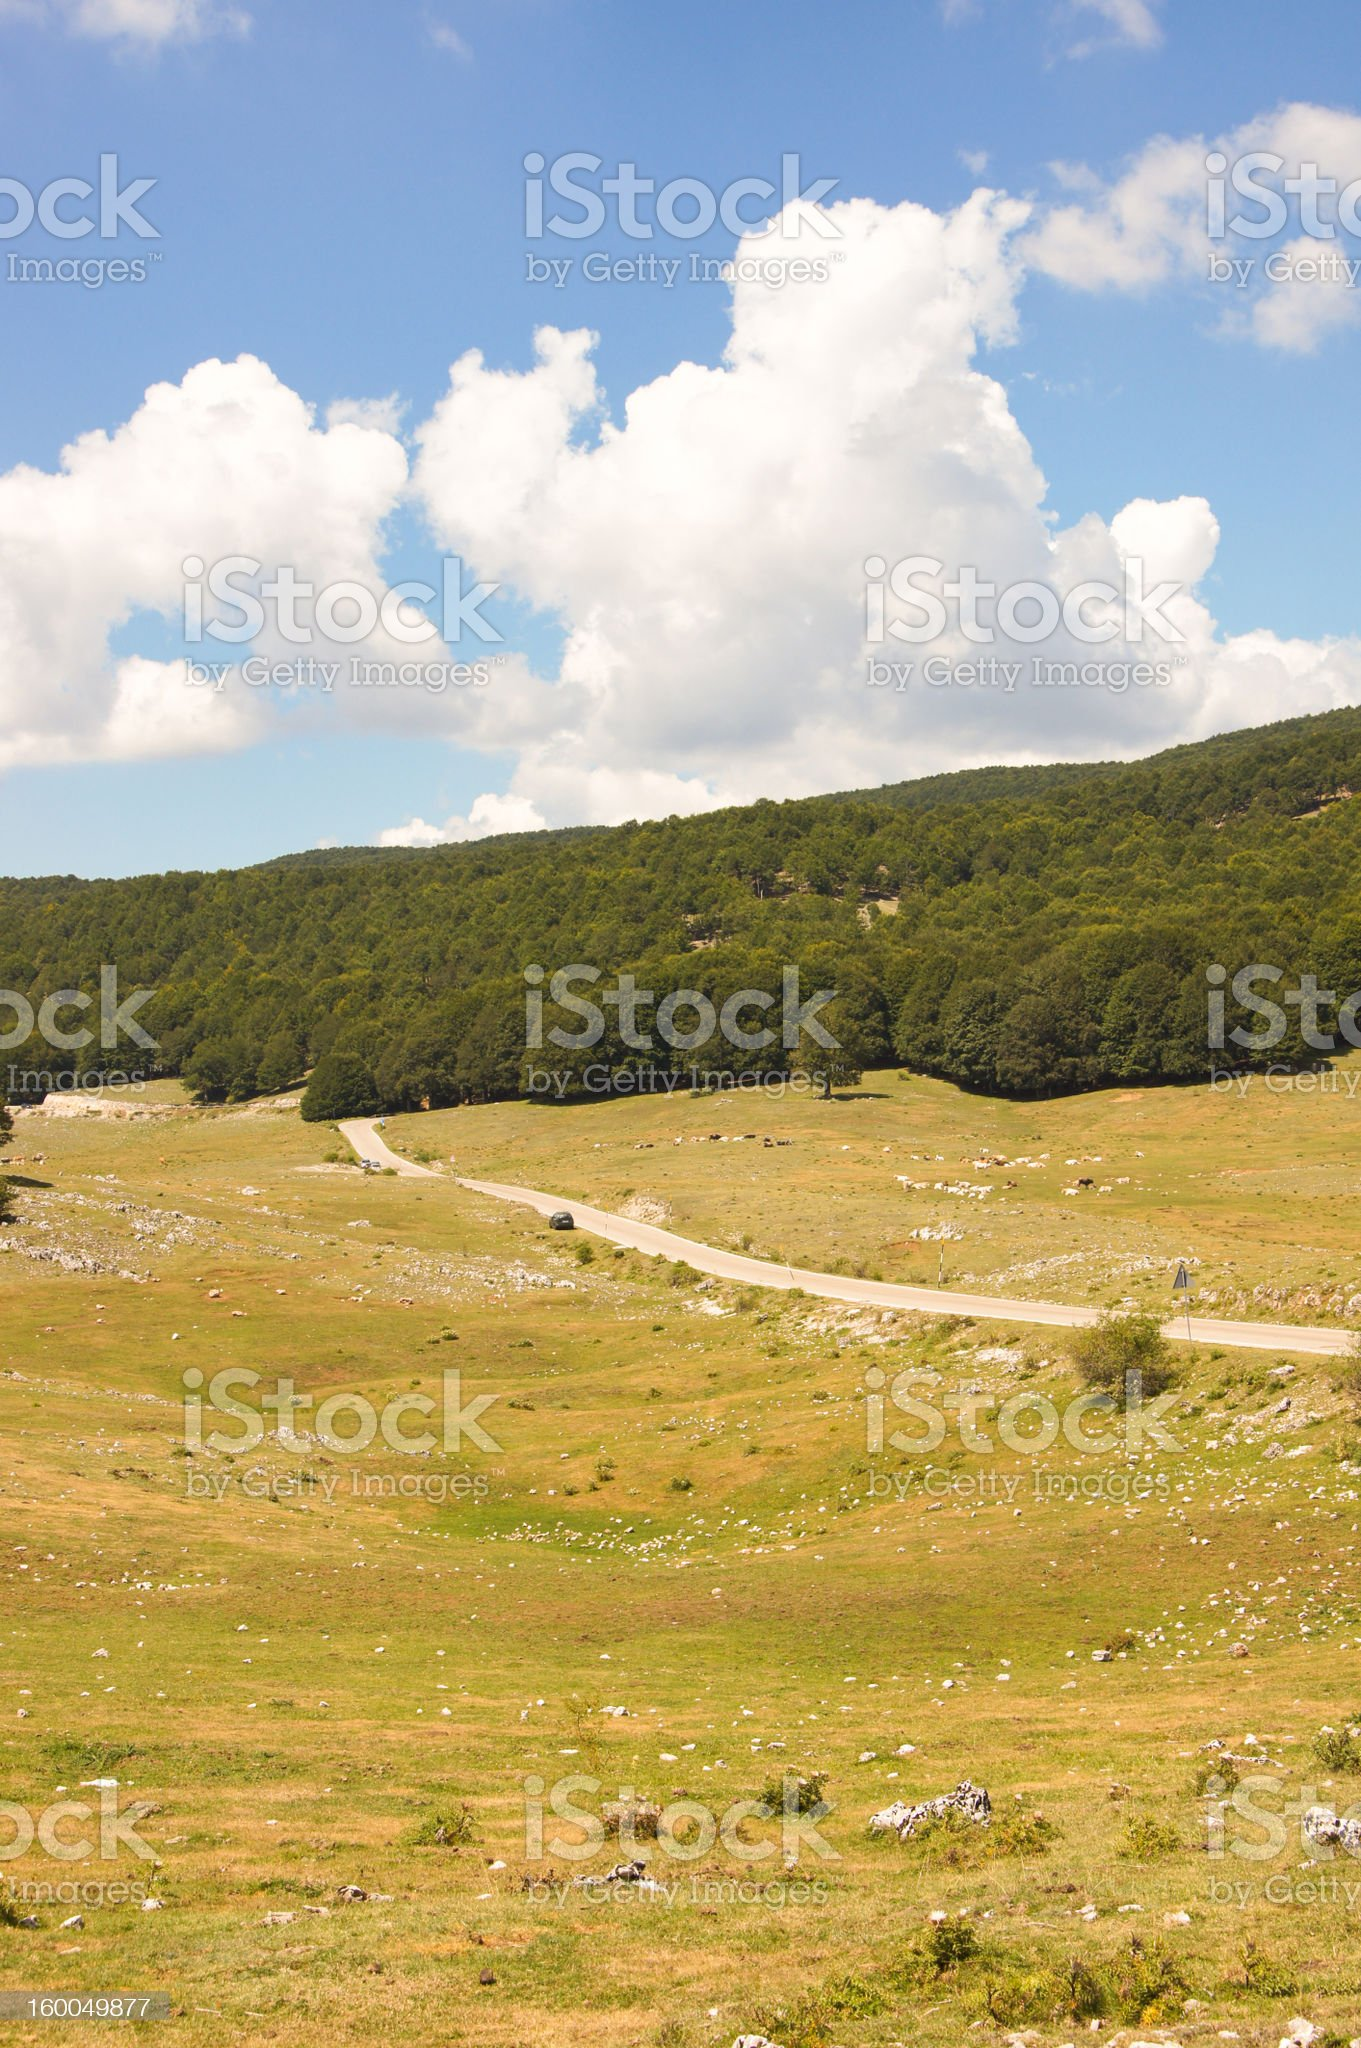 Vertical Road through Hills and Woods royalty-free stock photo